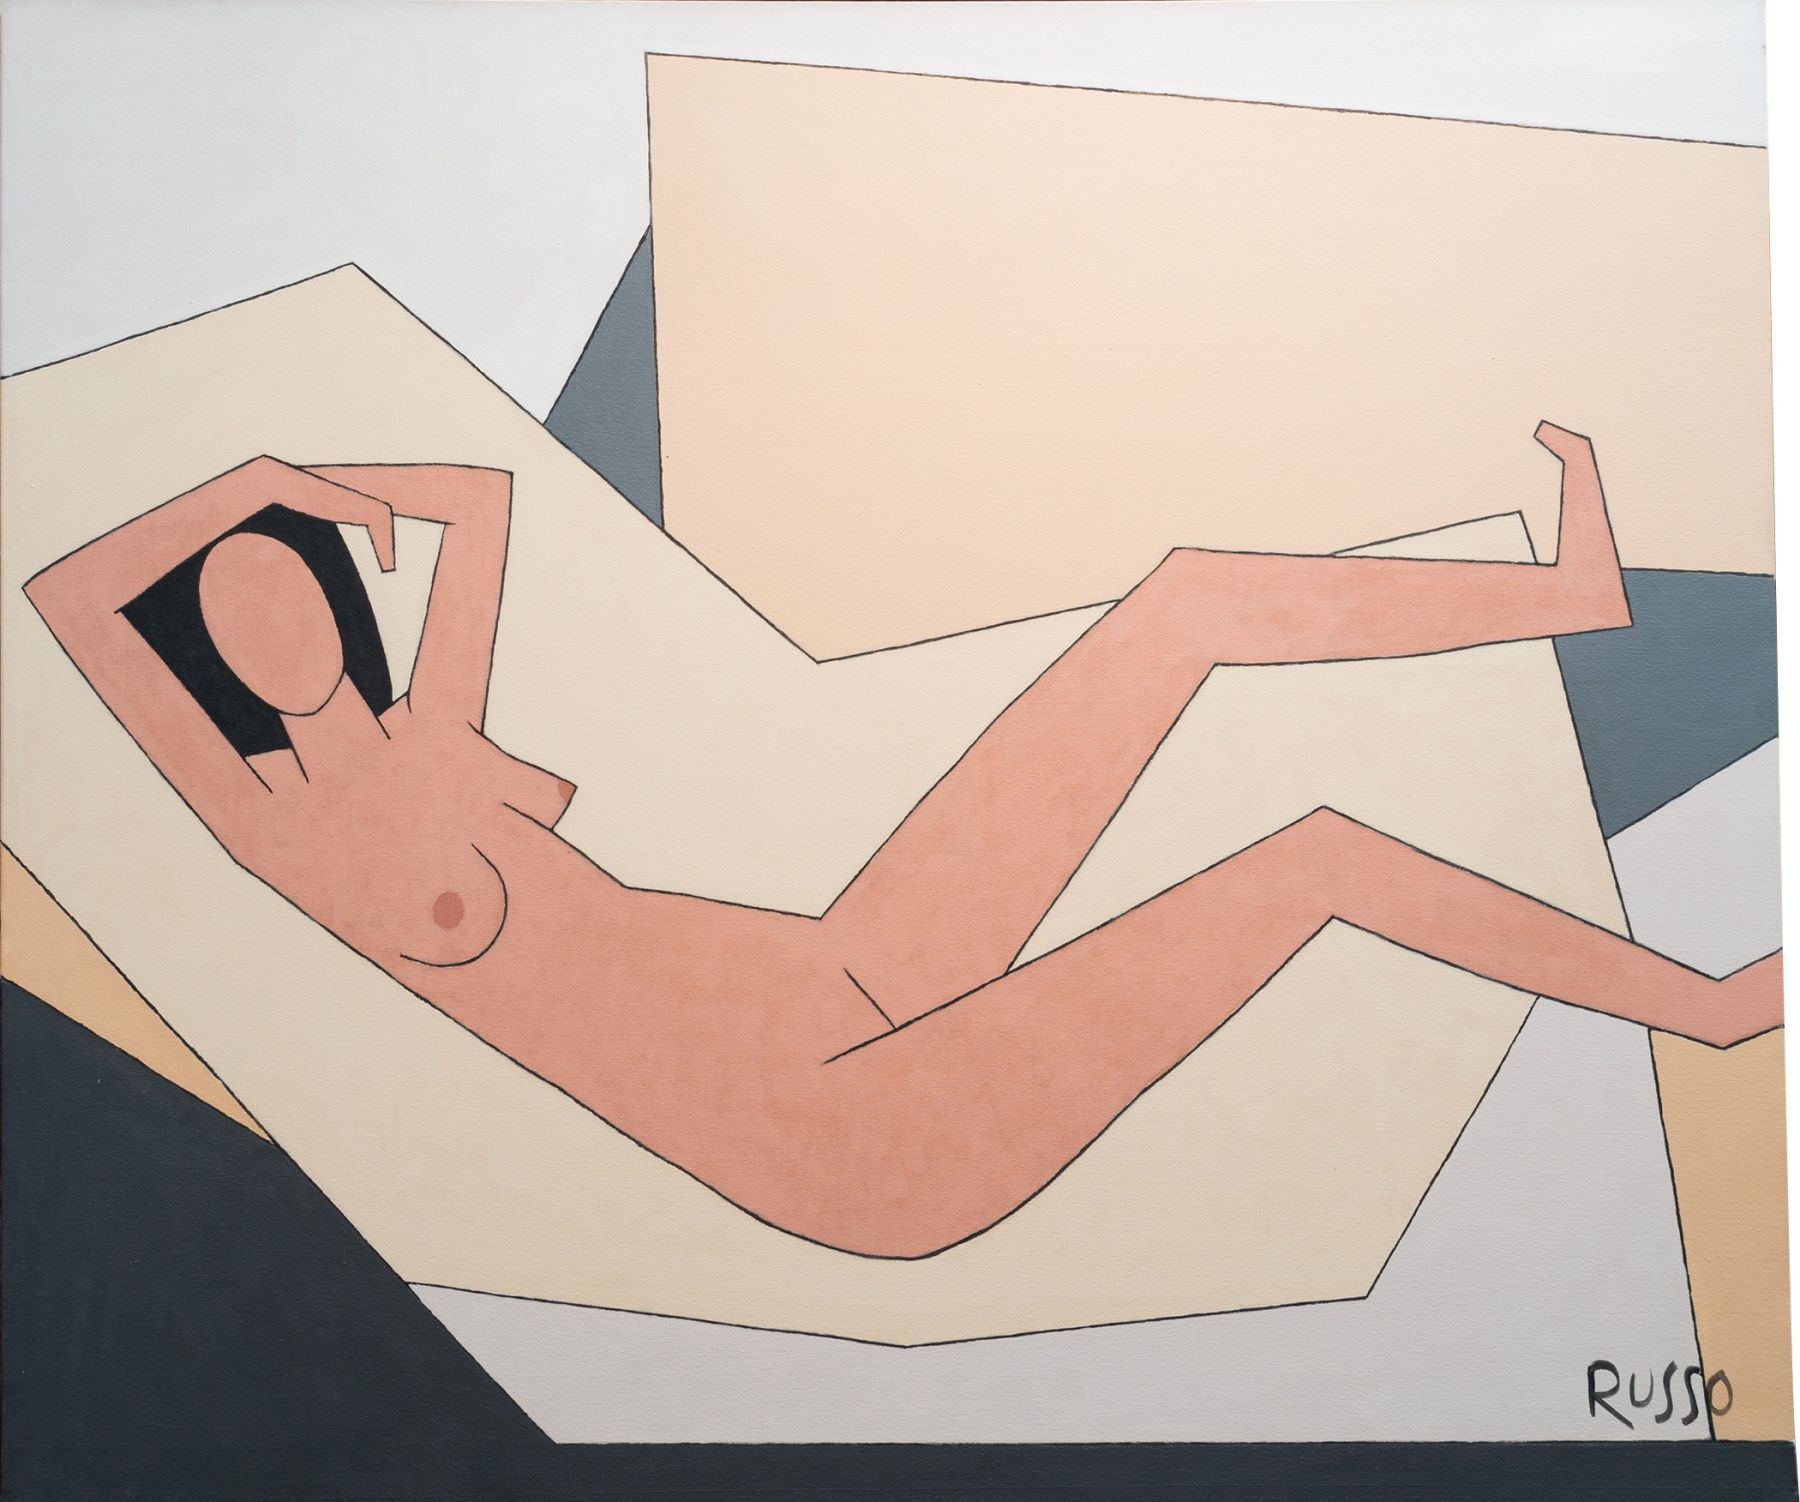 Russo - Nude in Geometric Environment